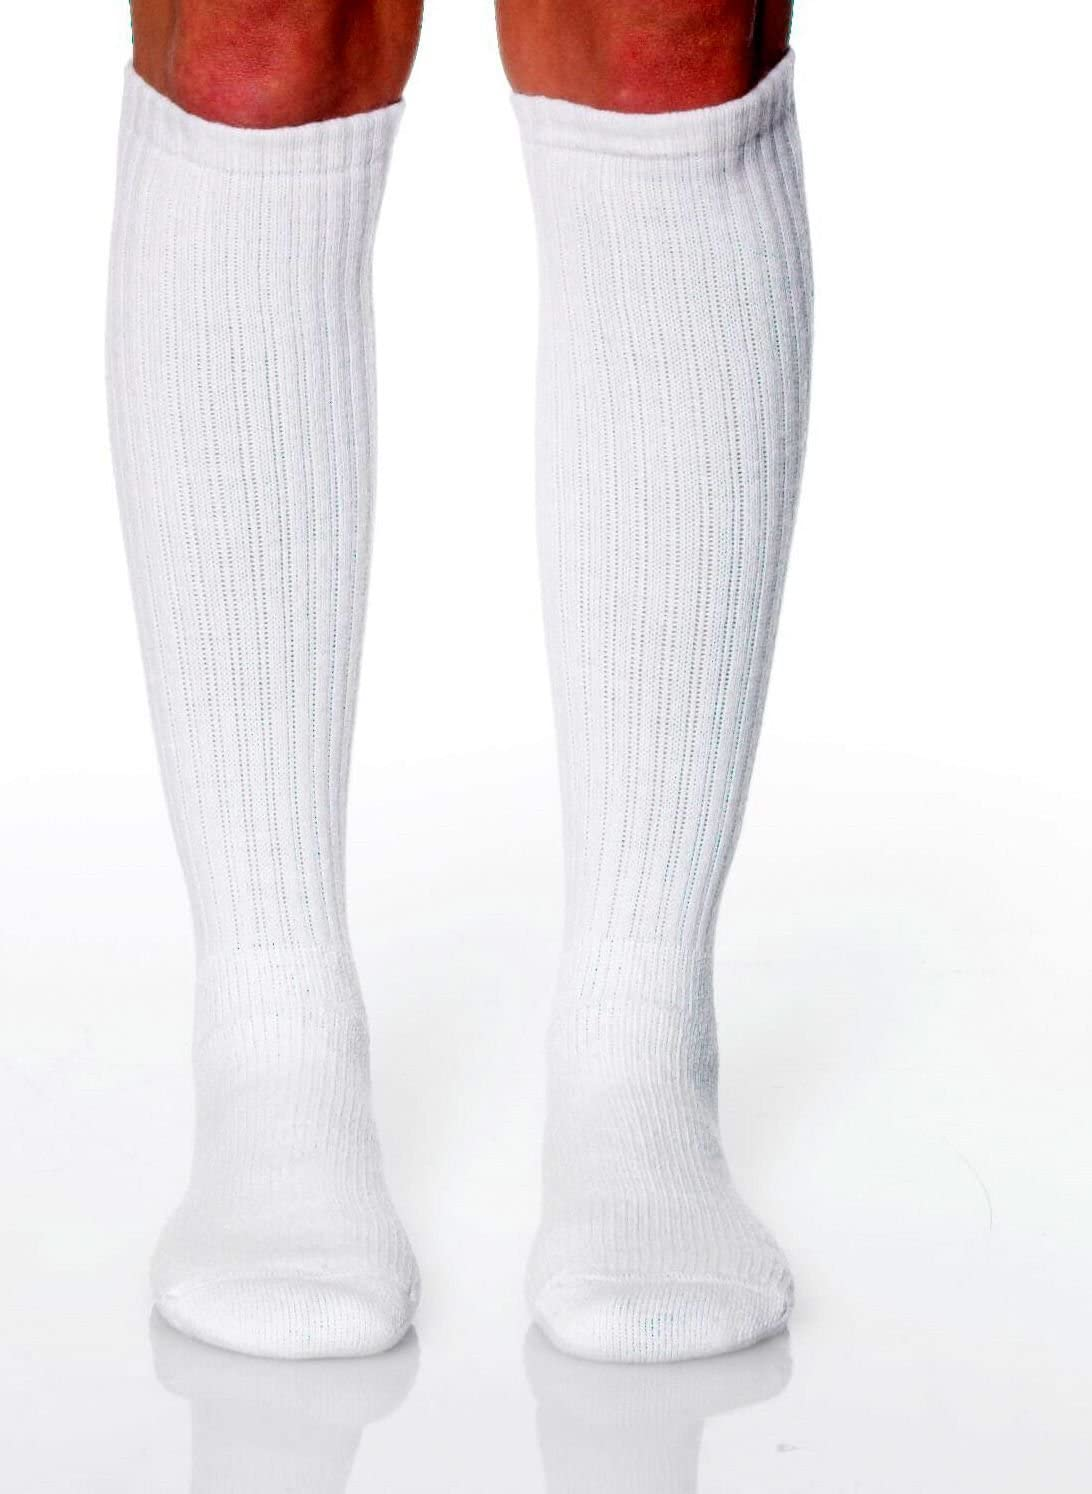 Microfiber Cable Pattern Trouser Compression Socks for Woman - (Black, XSmall)